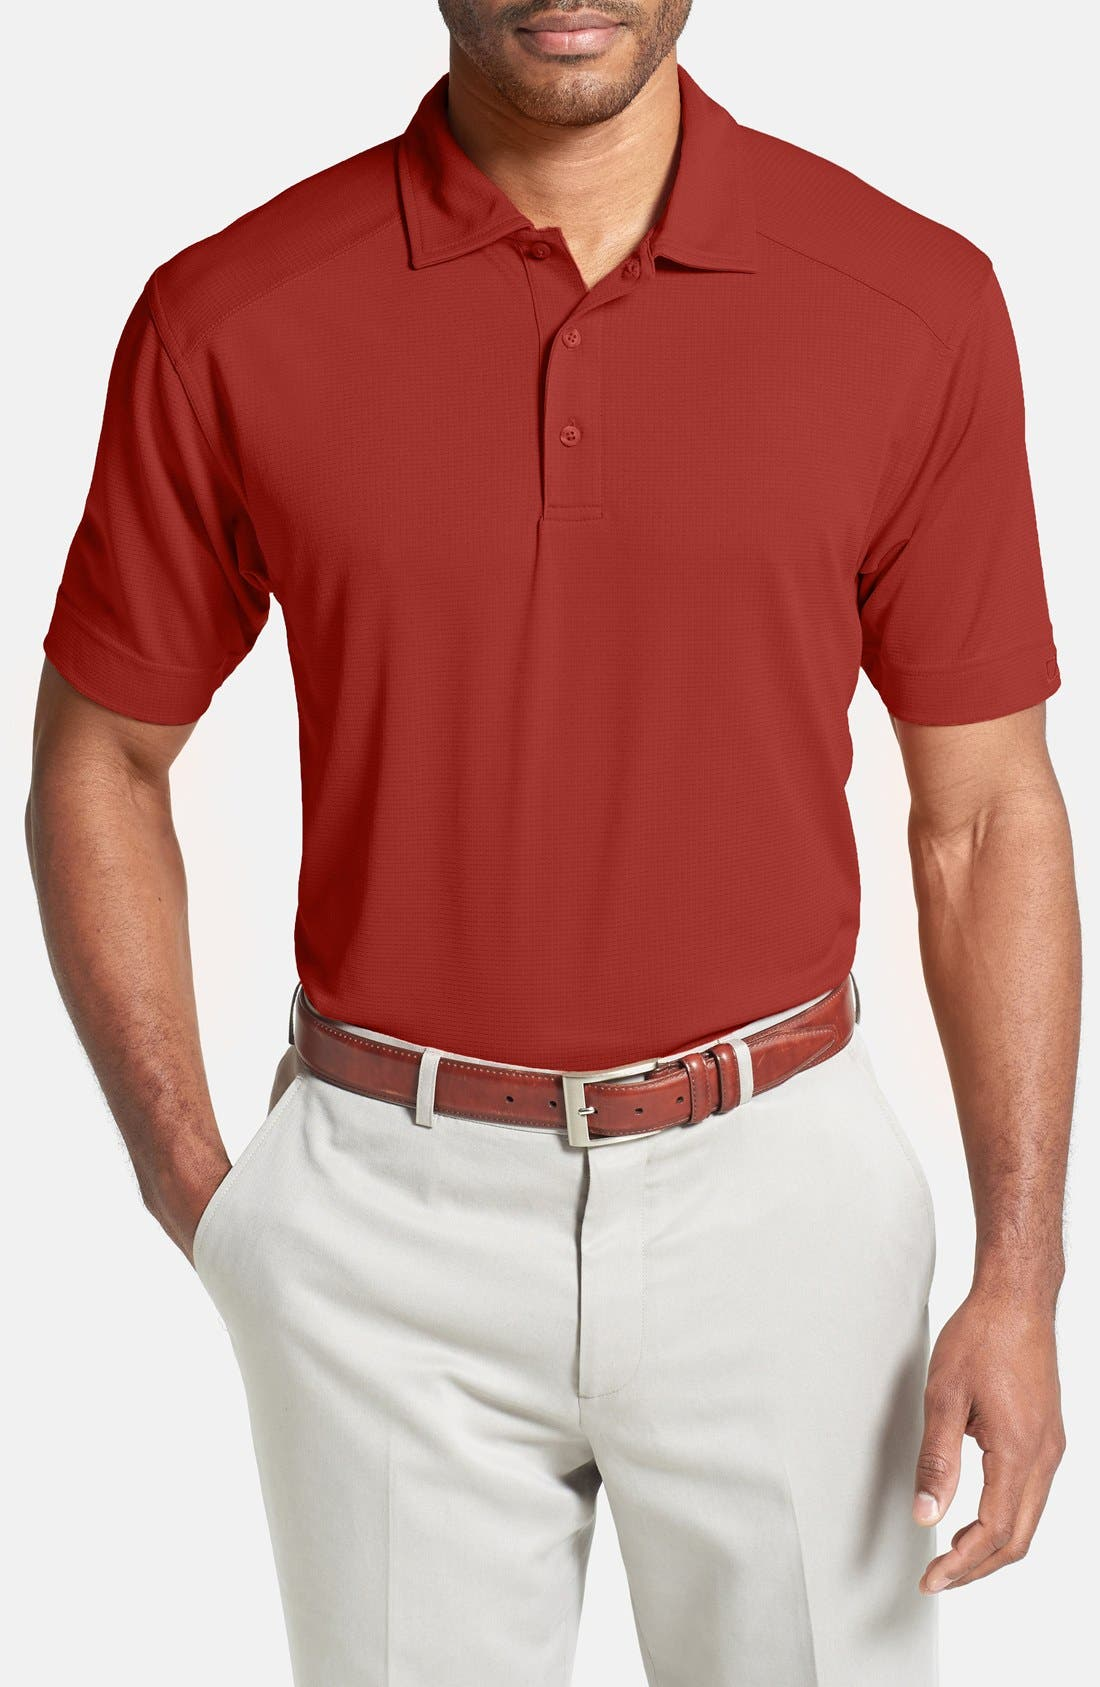 Cutter & Buck 'Genre' DryTec Moisture Wicking Polo (Big & Tall)